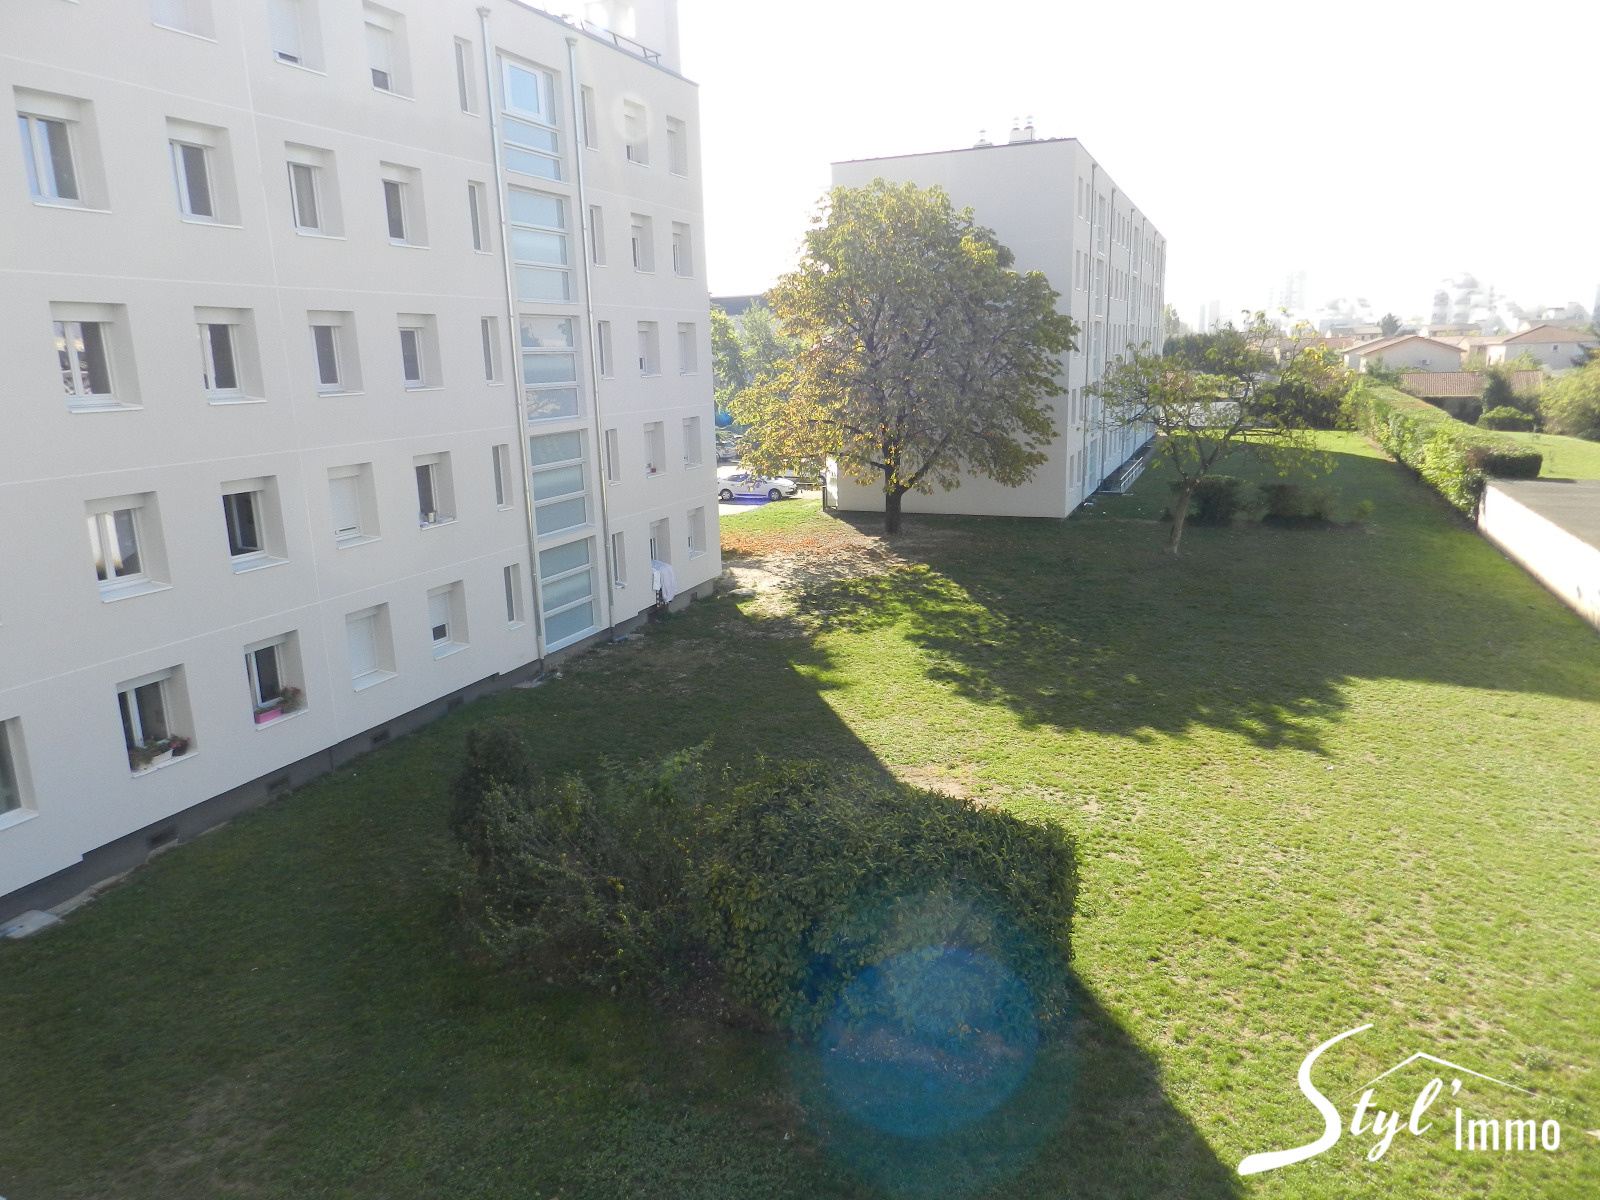 Annonce vente appartement vaulx en velin 69120 64 m for Porte vaulx en velin